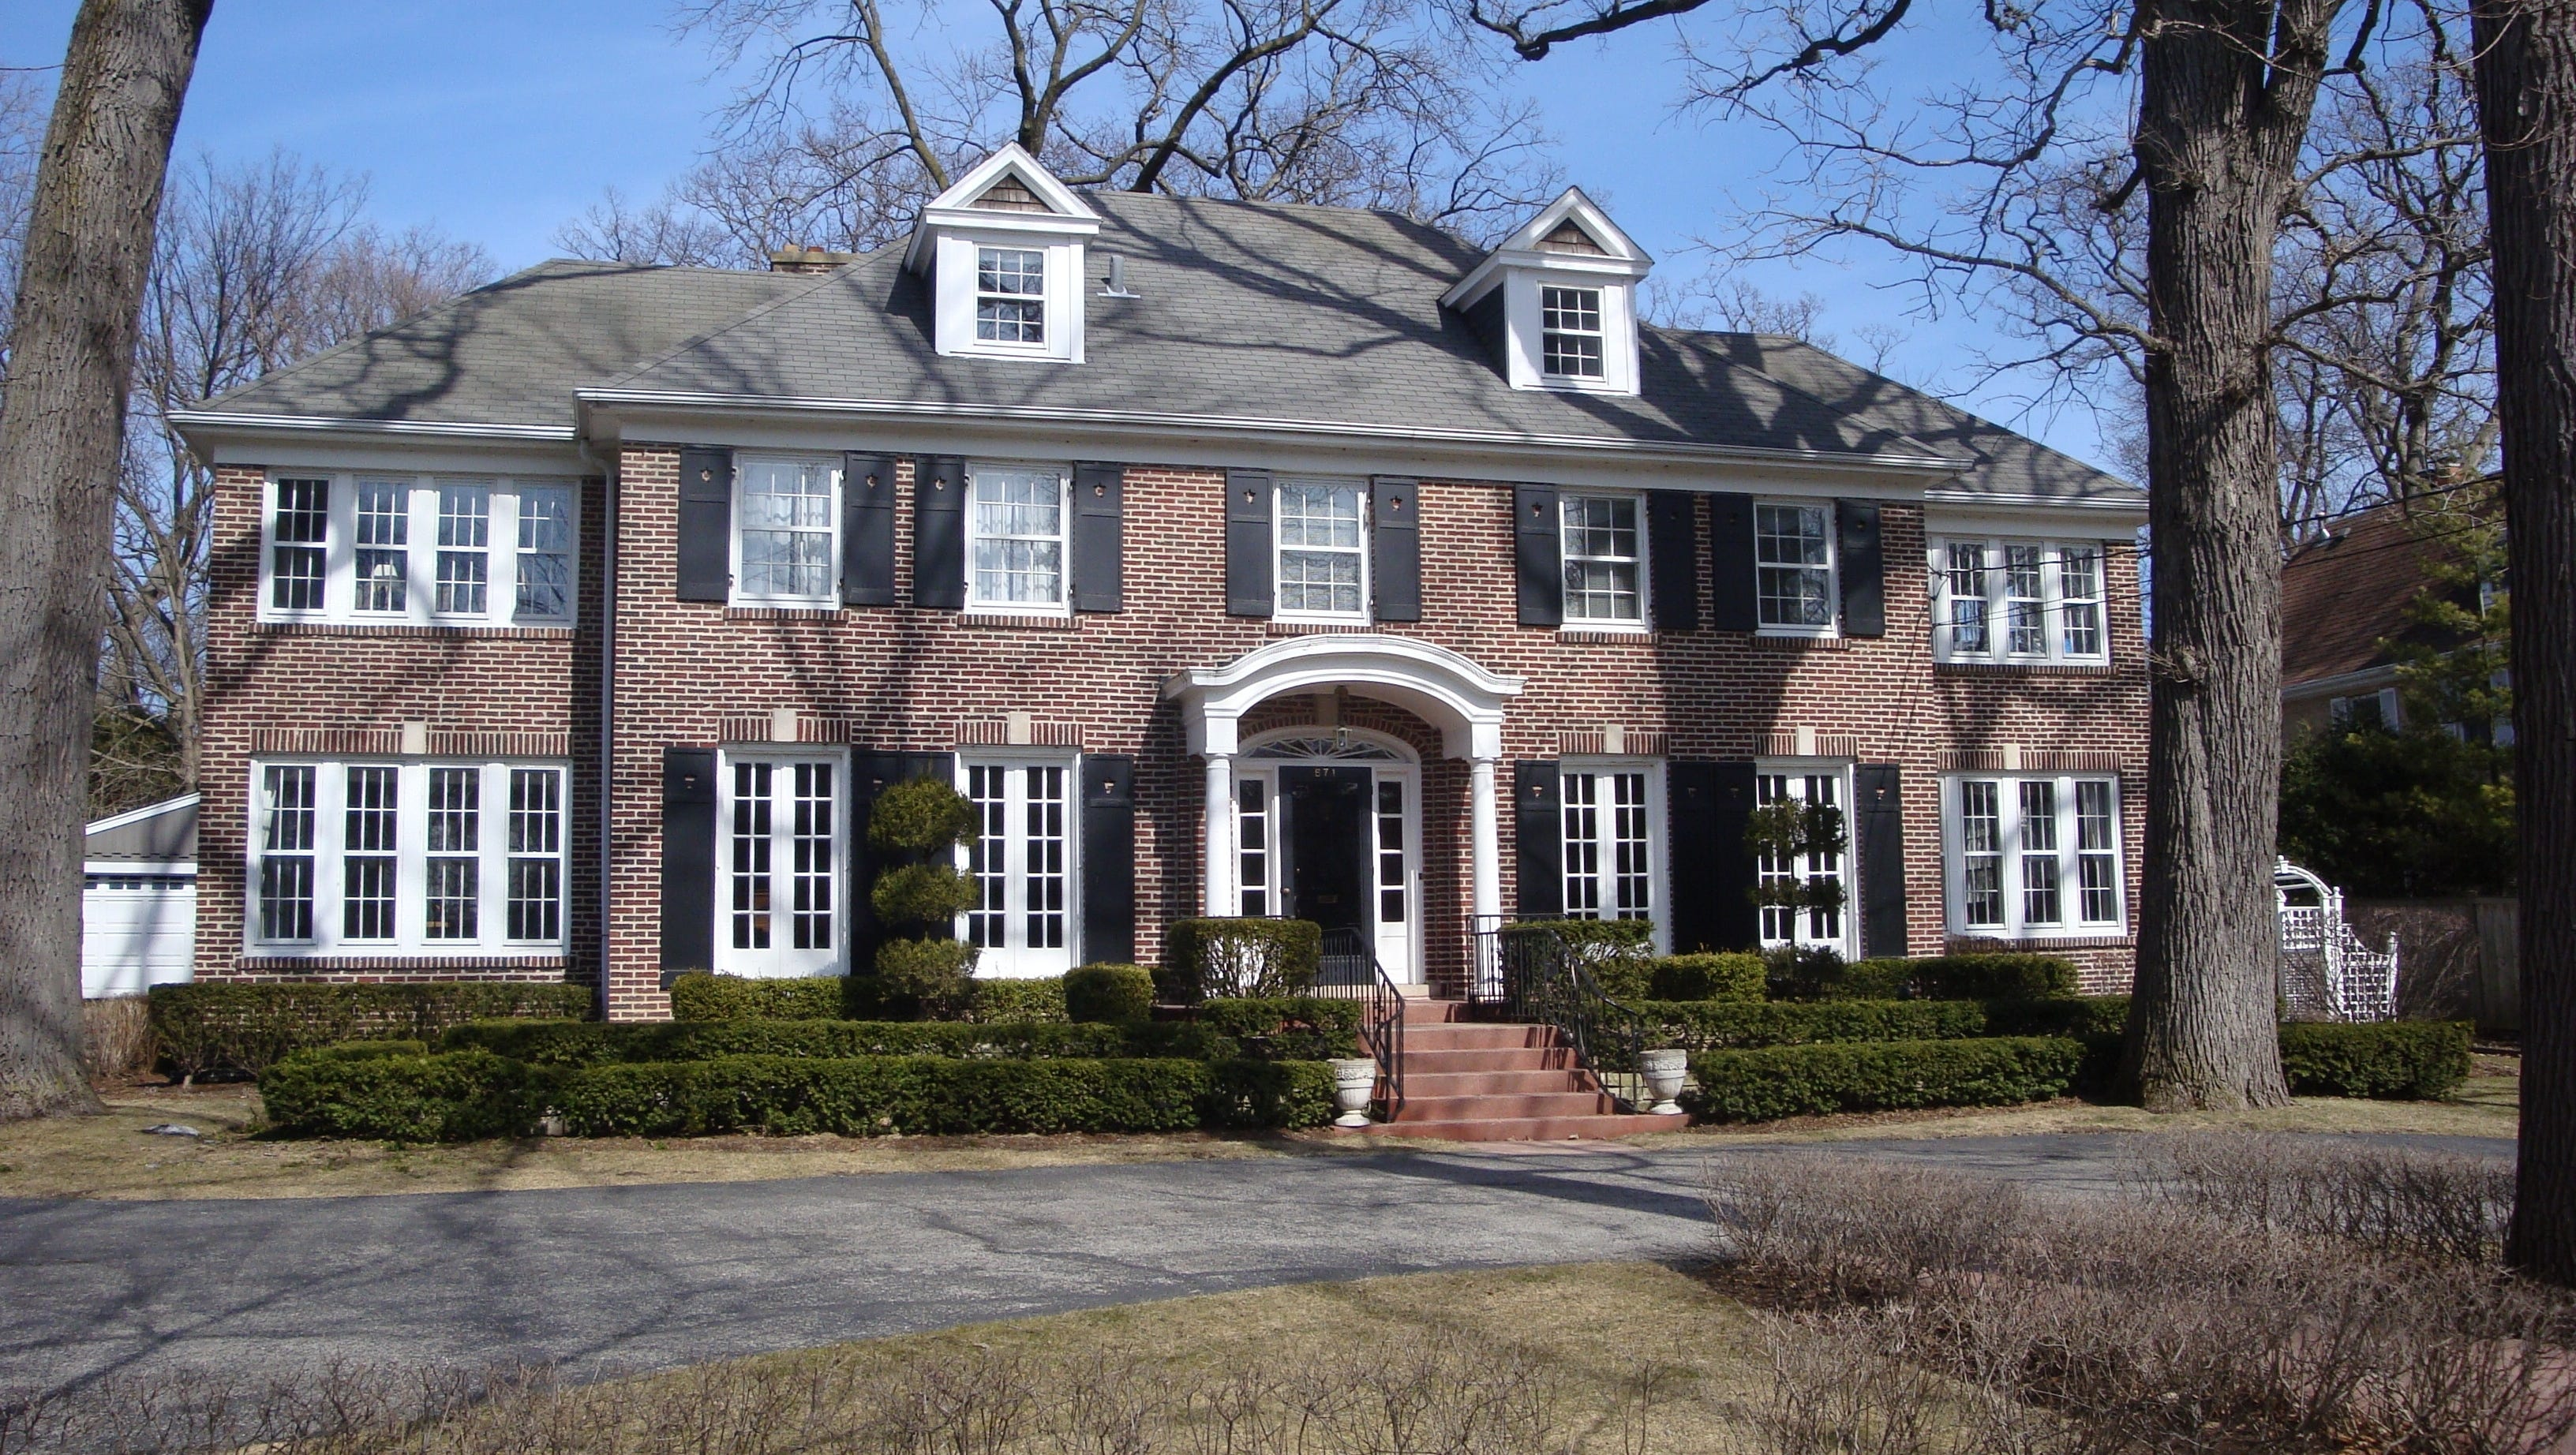 See The Home Alone House 28 Years Later